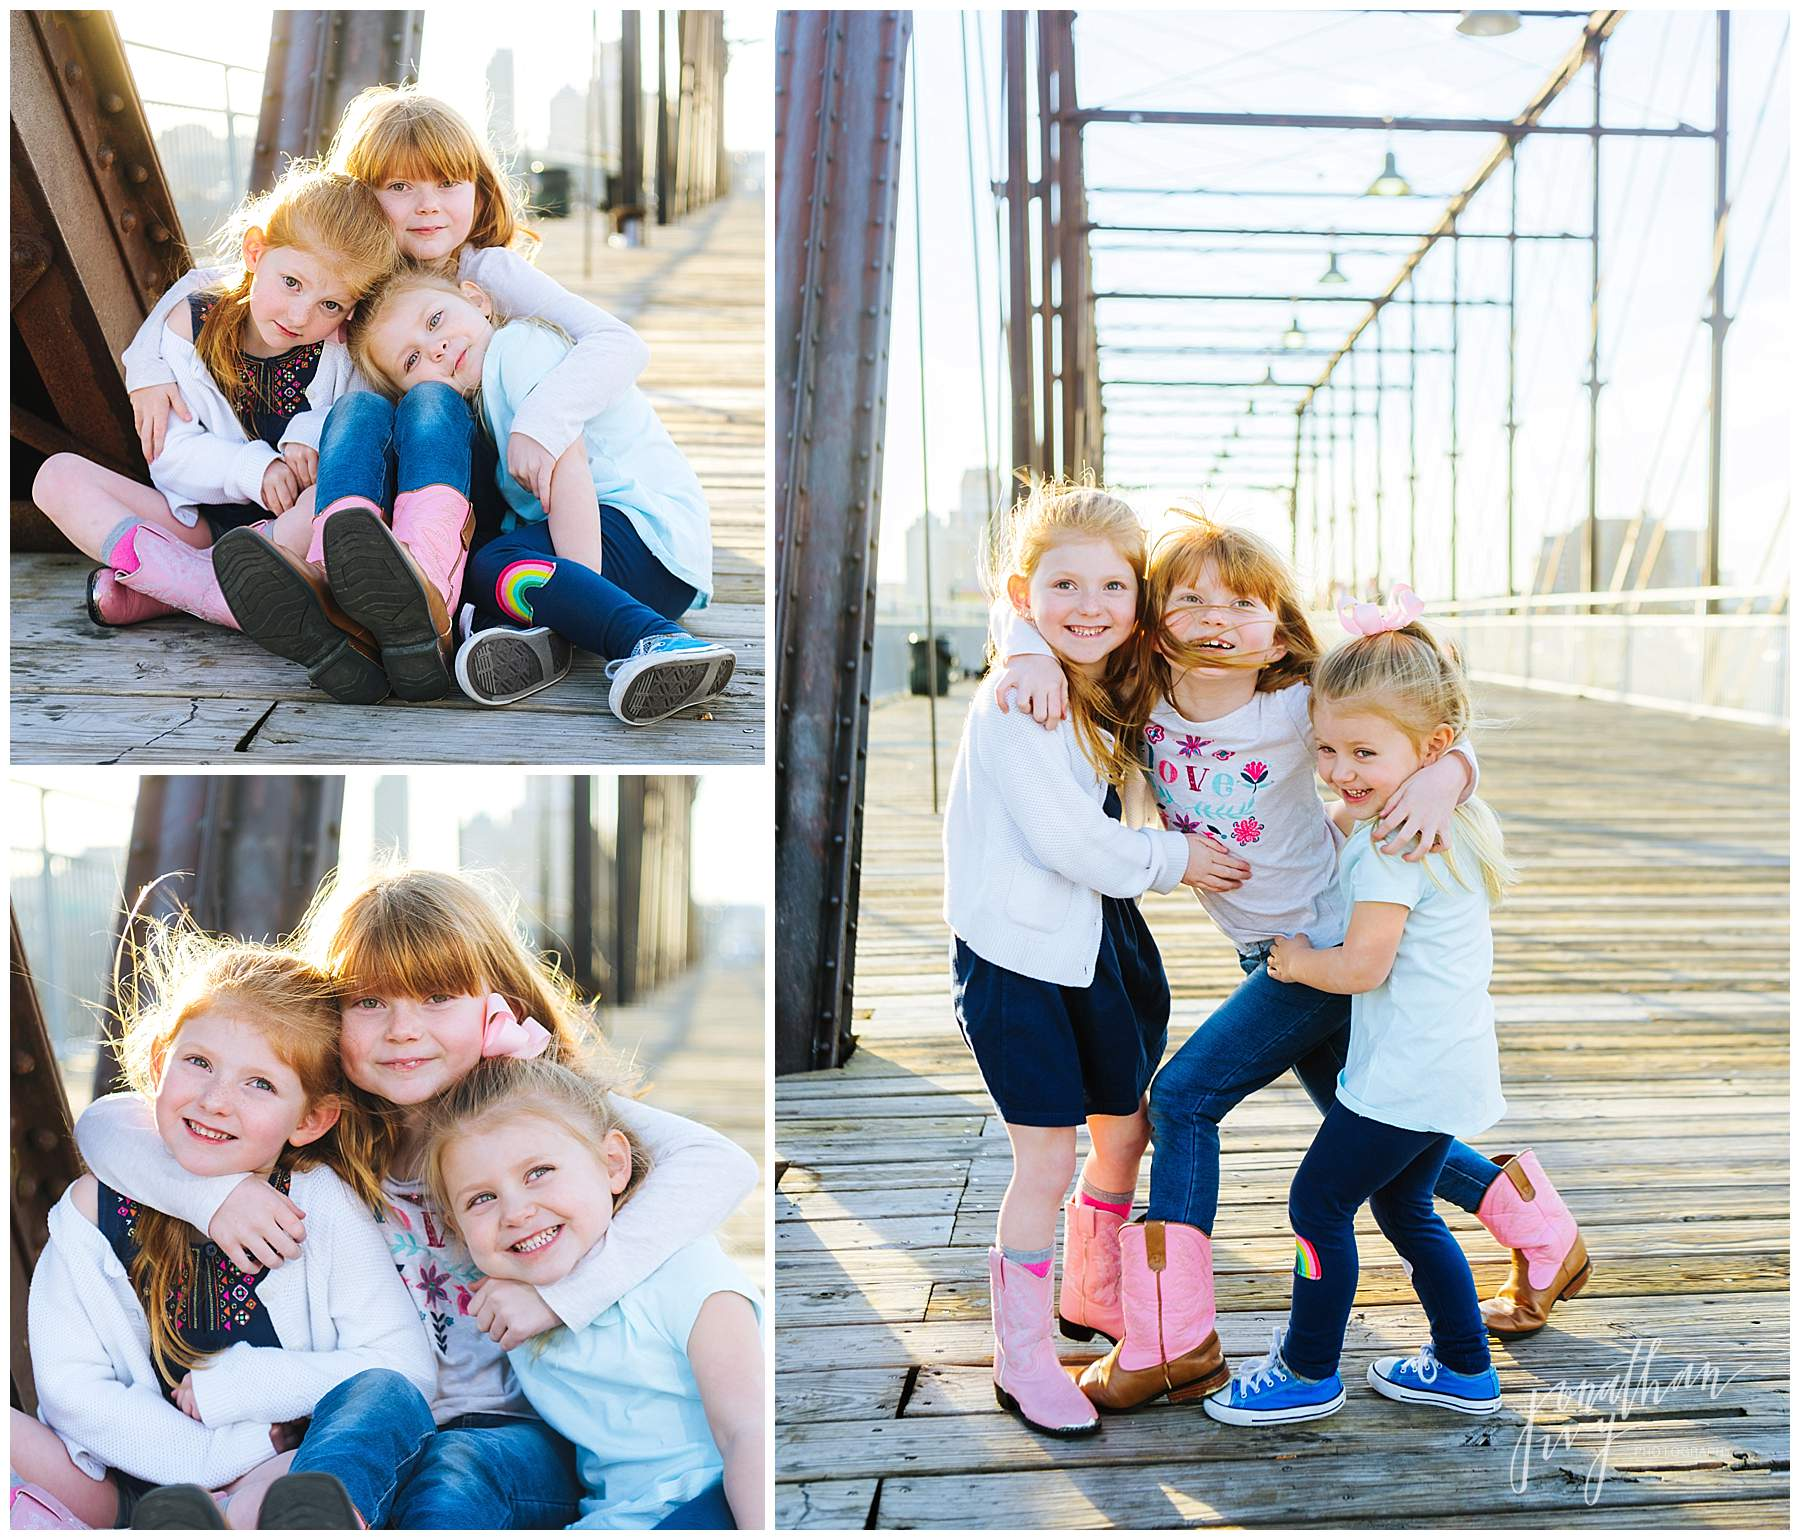 San Antonio Family Photographer: Hays Street Bridge Family Portraits